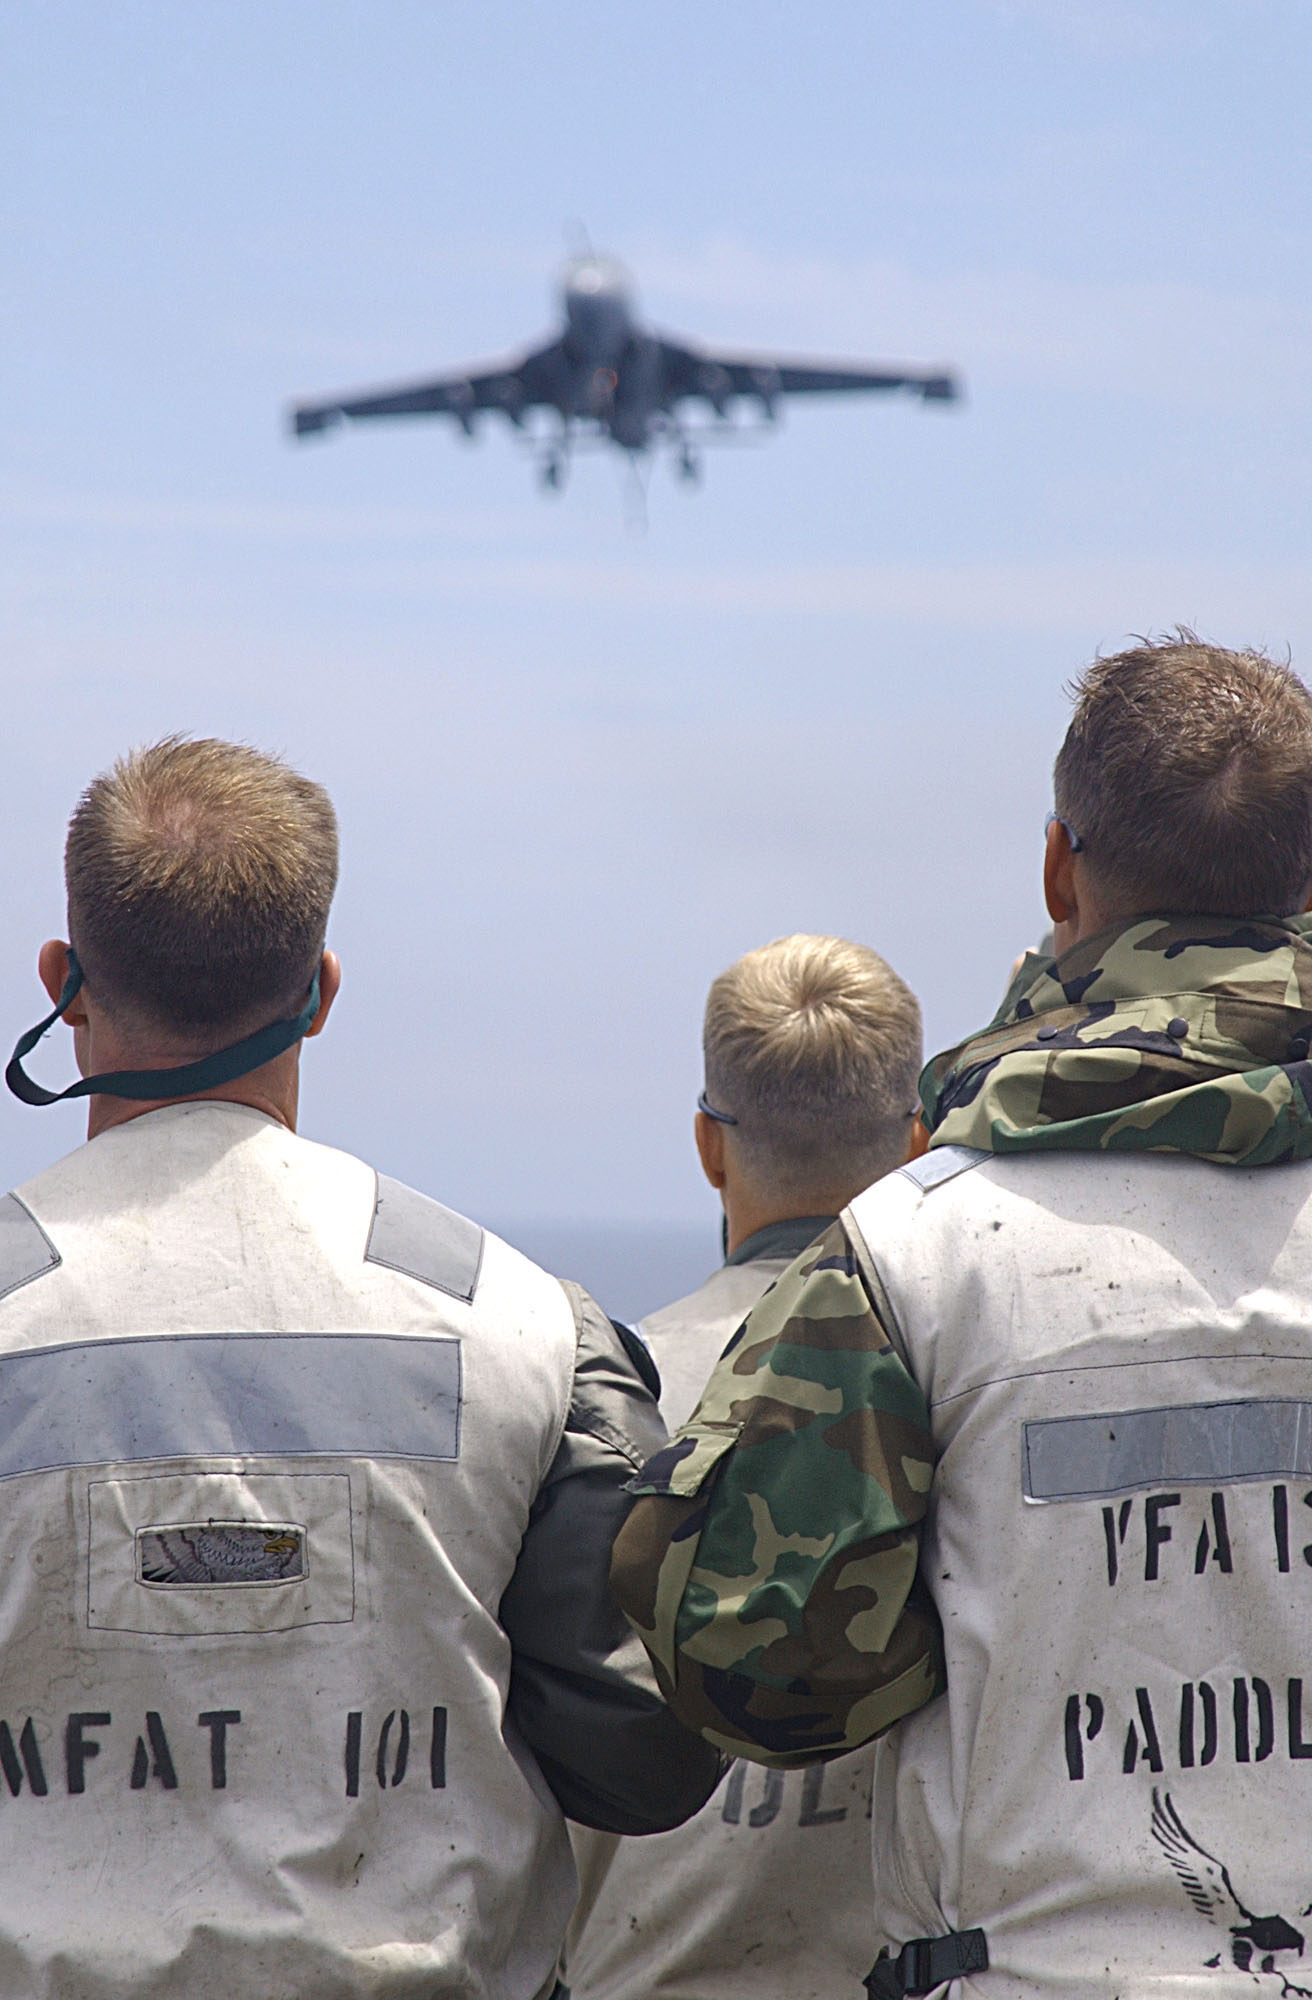 US Navy 030729-N-9769P-031 Landing Signal Officers (LSO) observe the landing of an EA-6B Prowler aboard the nuclear powered aircraft carrier USS John C. Stennis (CVN 74)